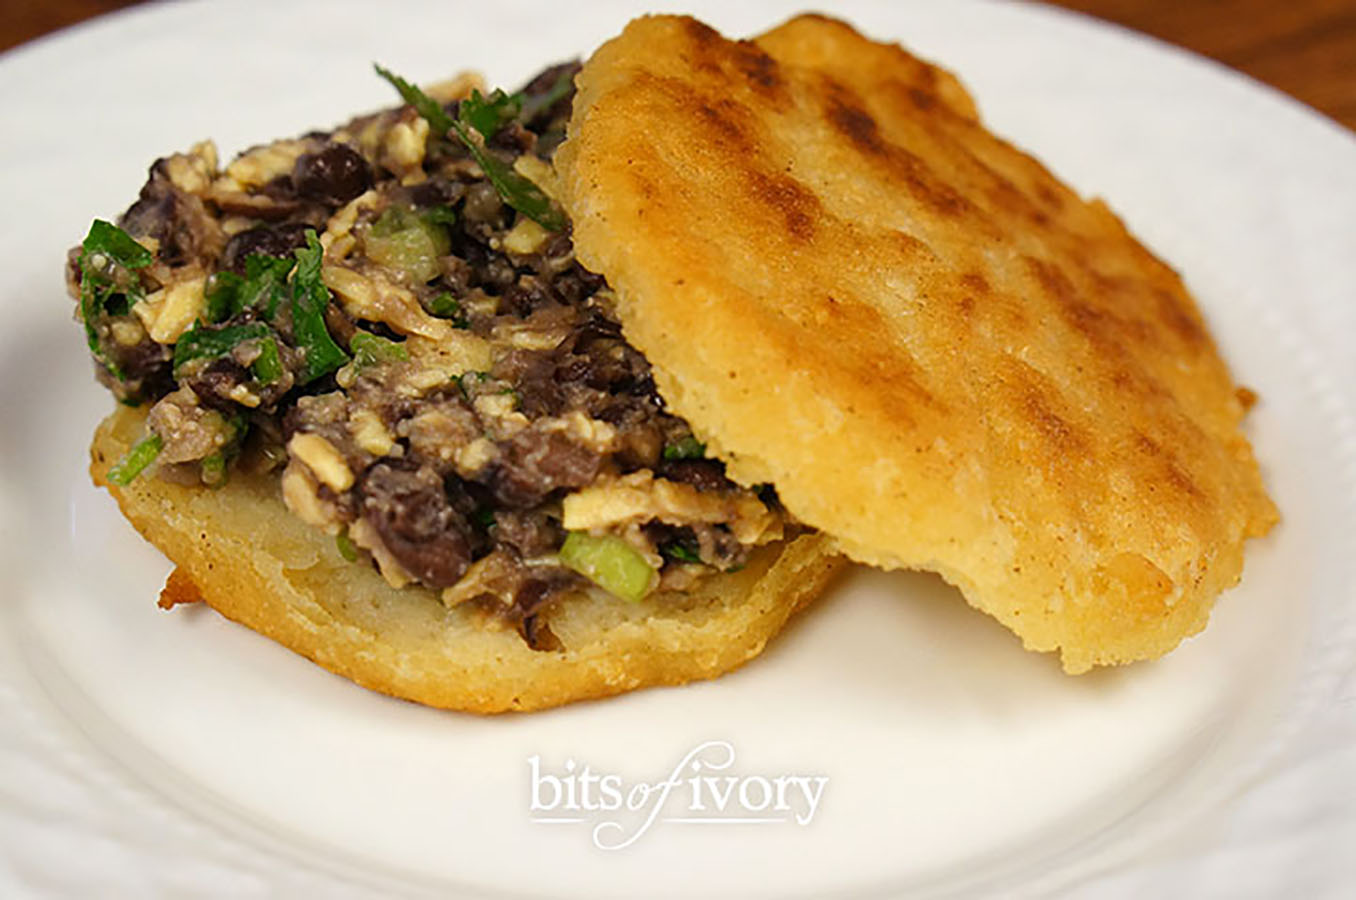 Arepas stuffed with fresh black bean filling | Venezuelan Corn Cakes - Arepas | www.bitsofivory.com